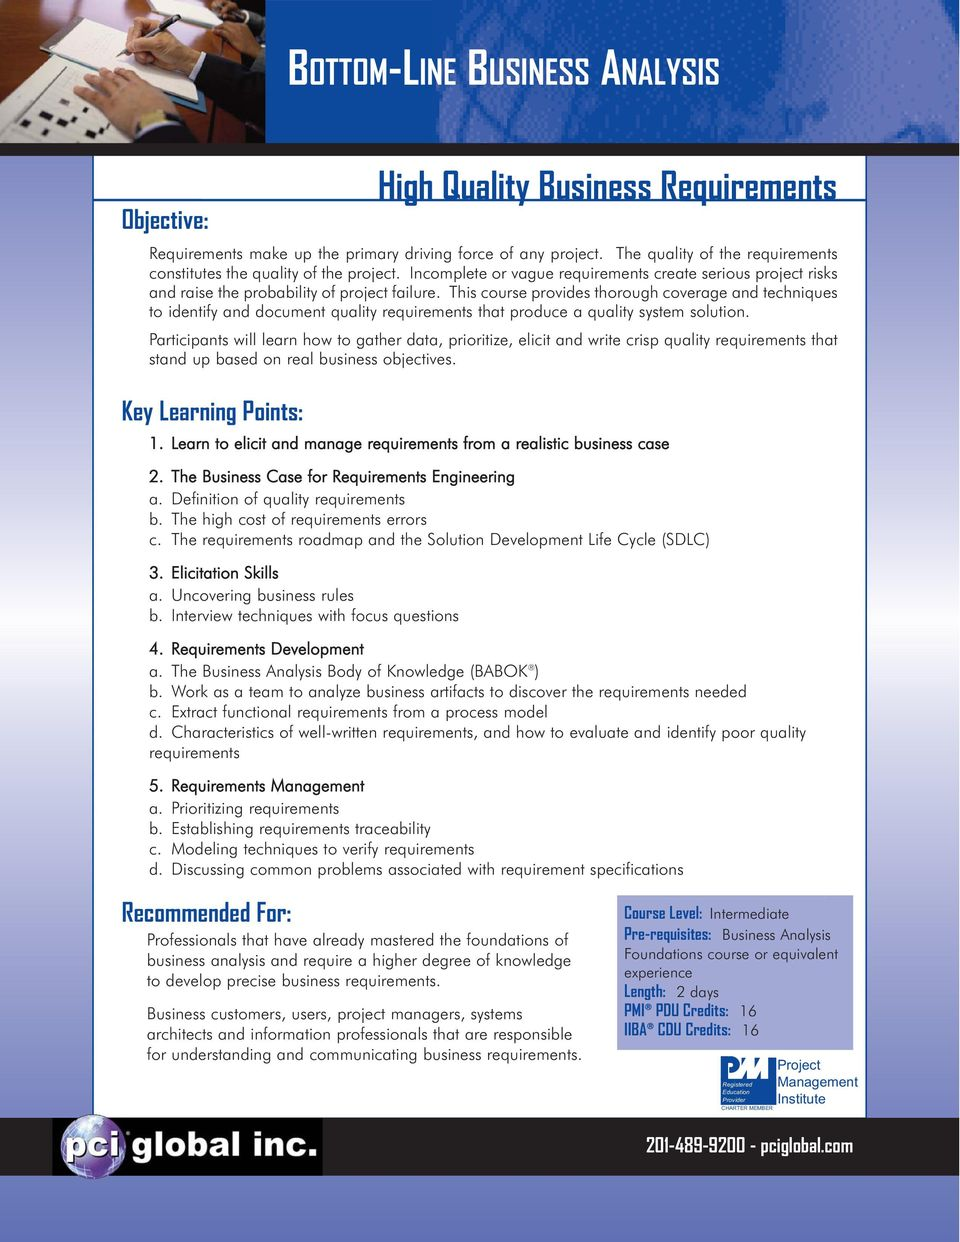 This course provides thorough coverage and techniques to identify and document quality requirements that produce a quality system solution.